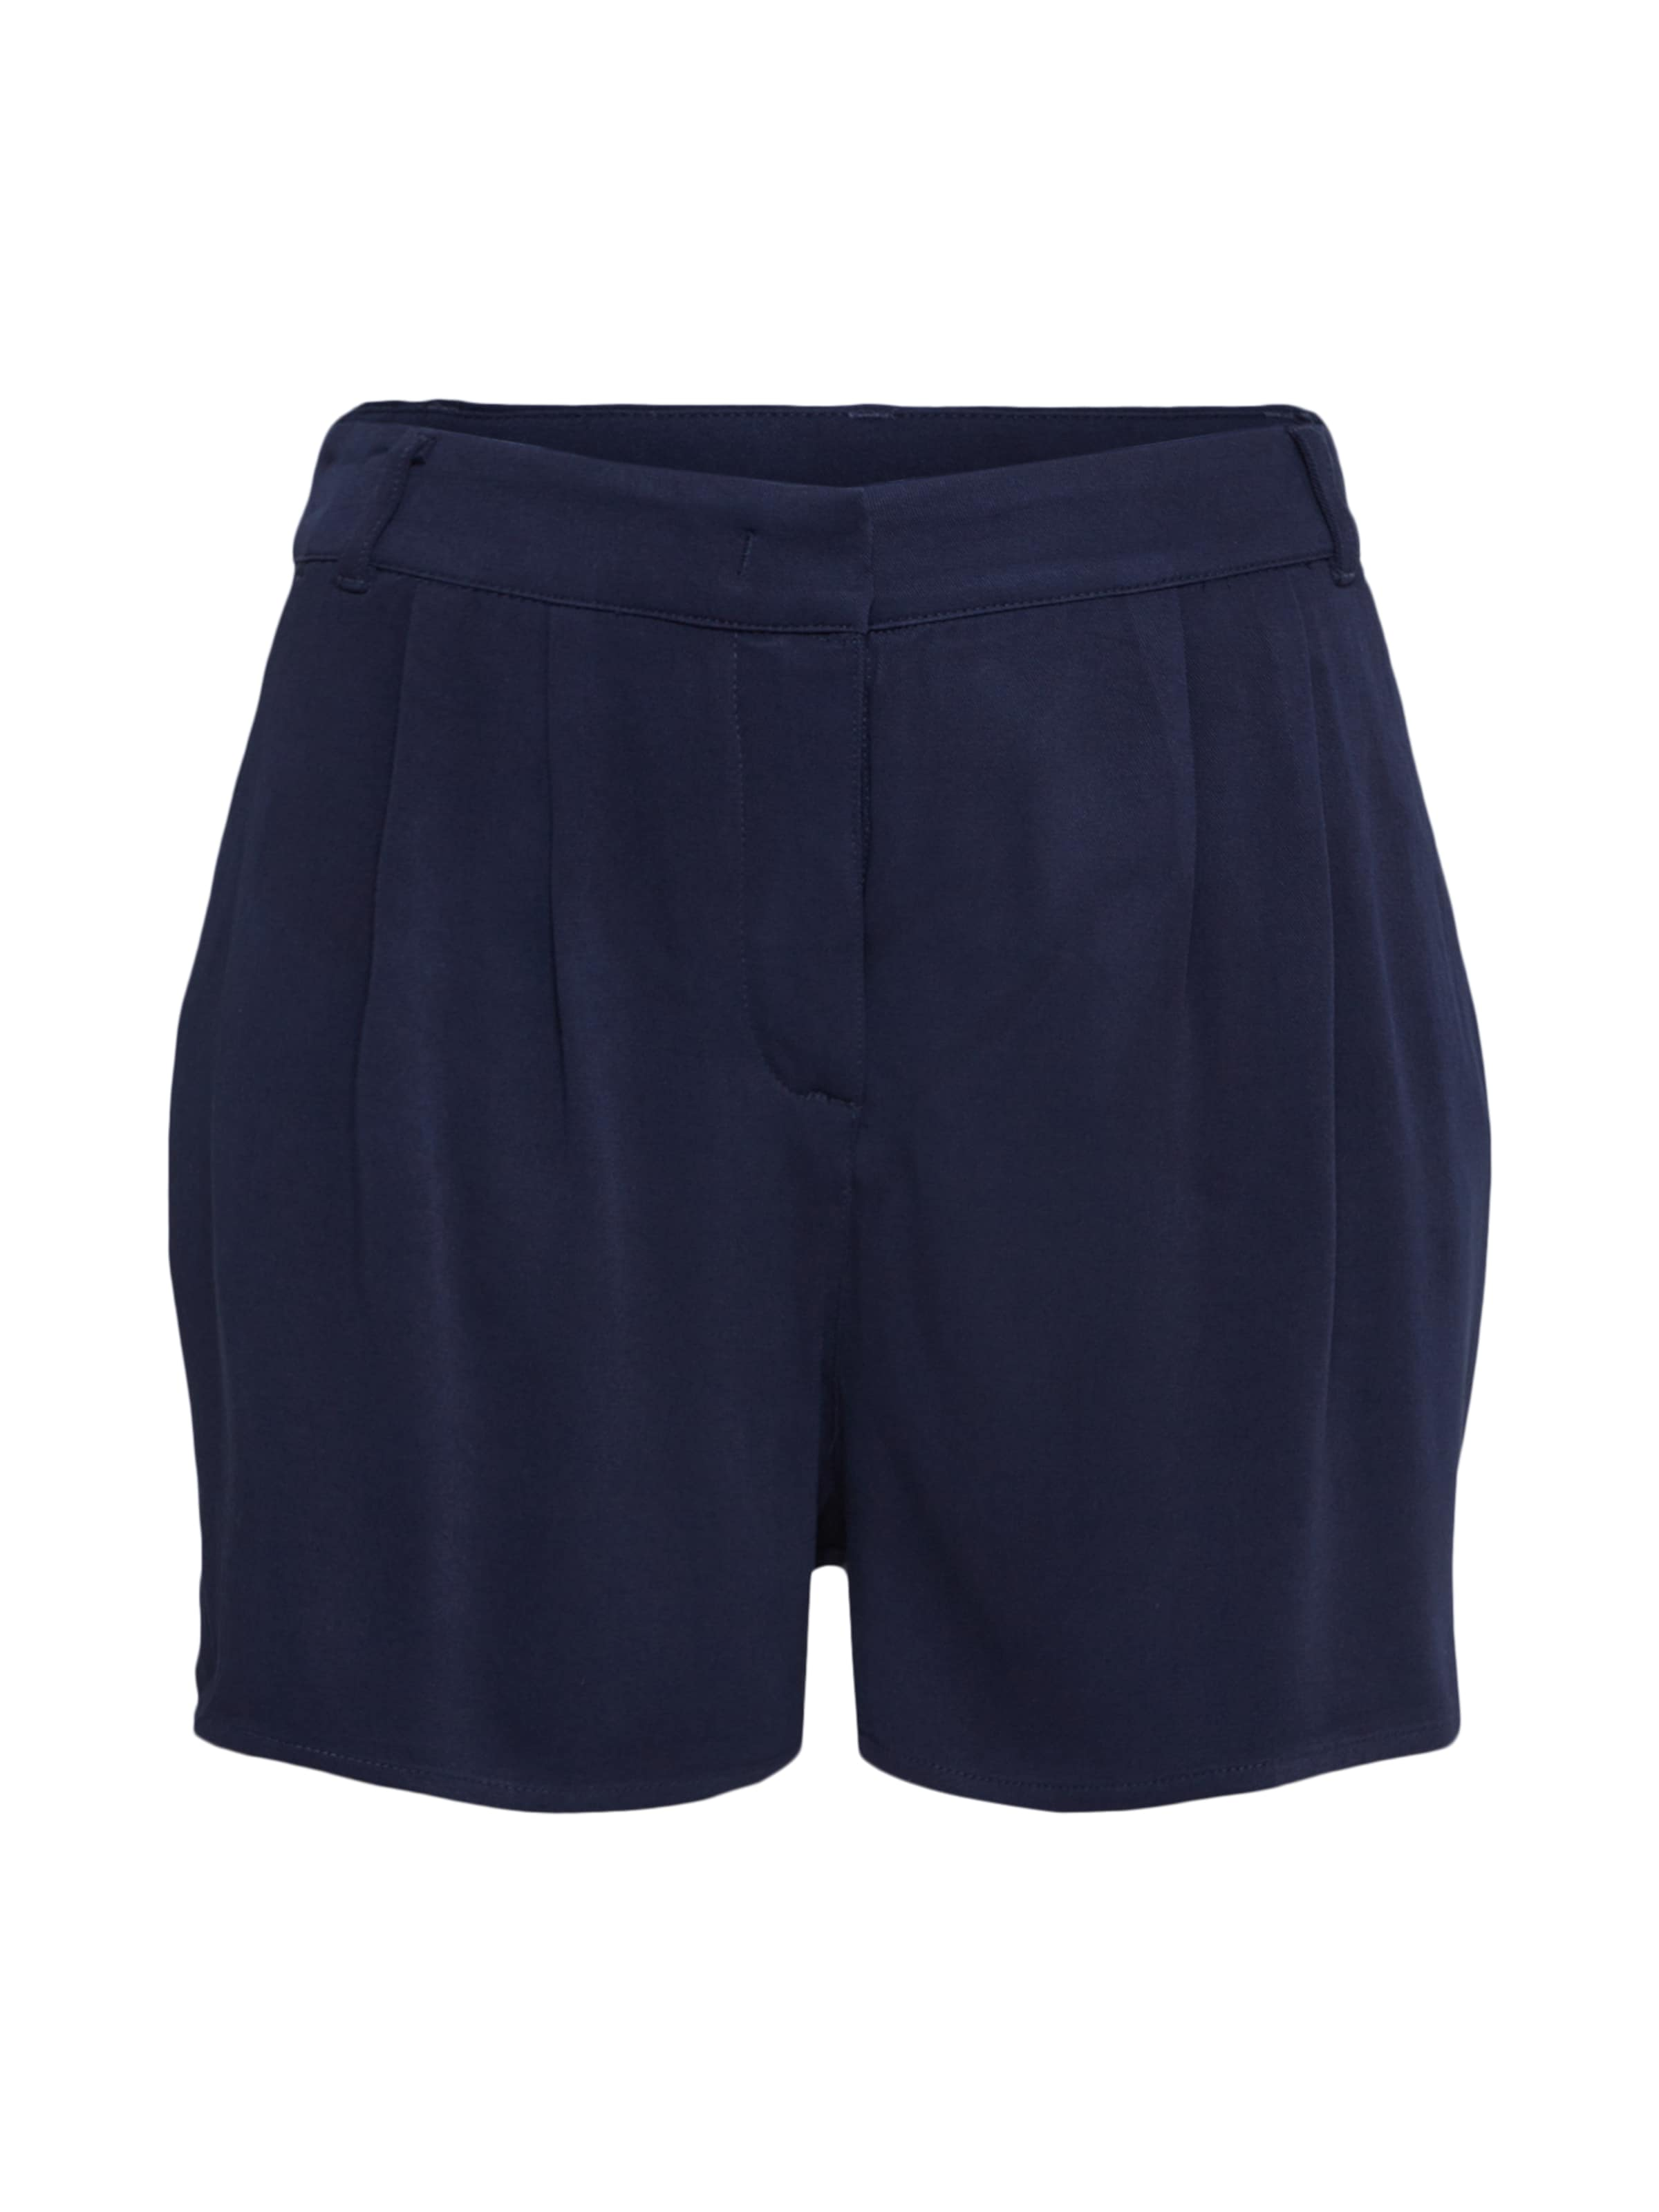 Review Dunkelblau In Shorts In 'volume' Review Dunkelblau Review Shorts 'volume' Shorts 80wPOkXn